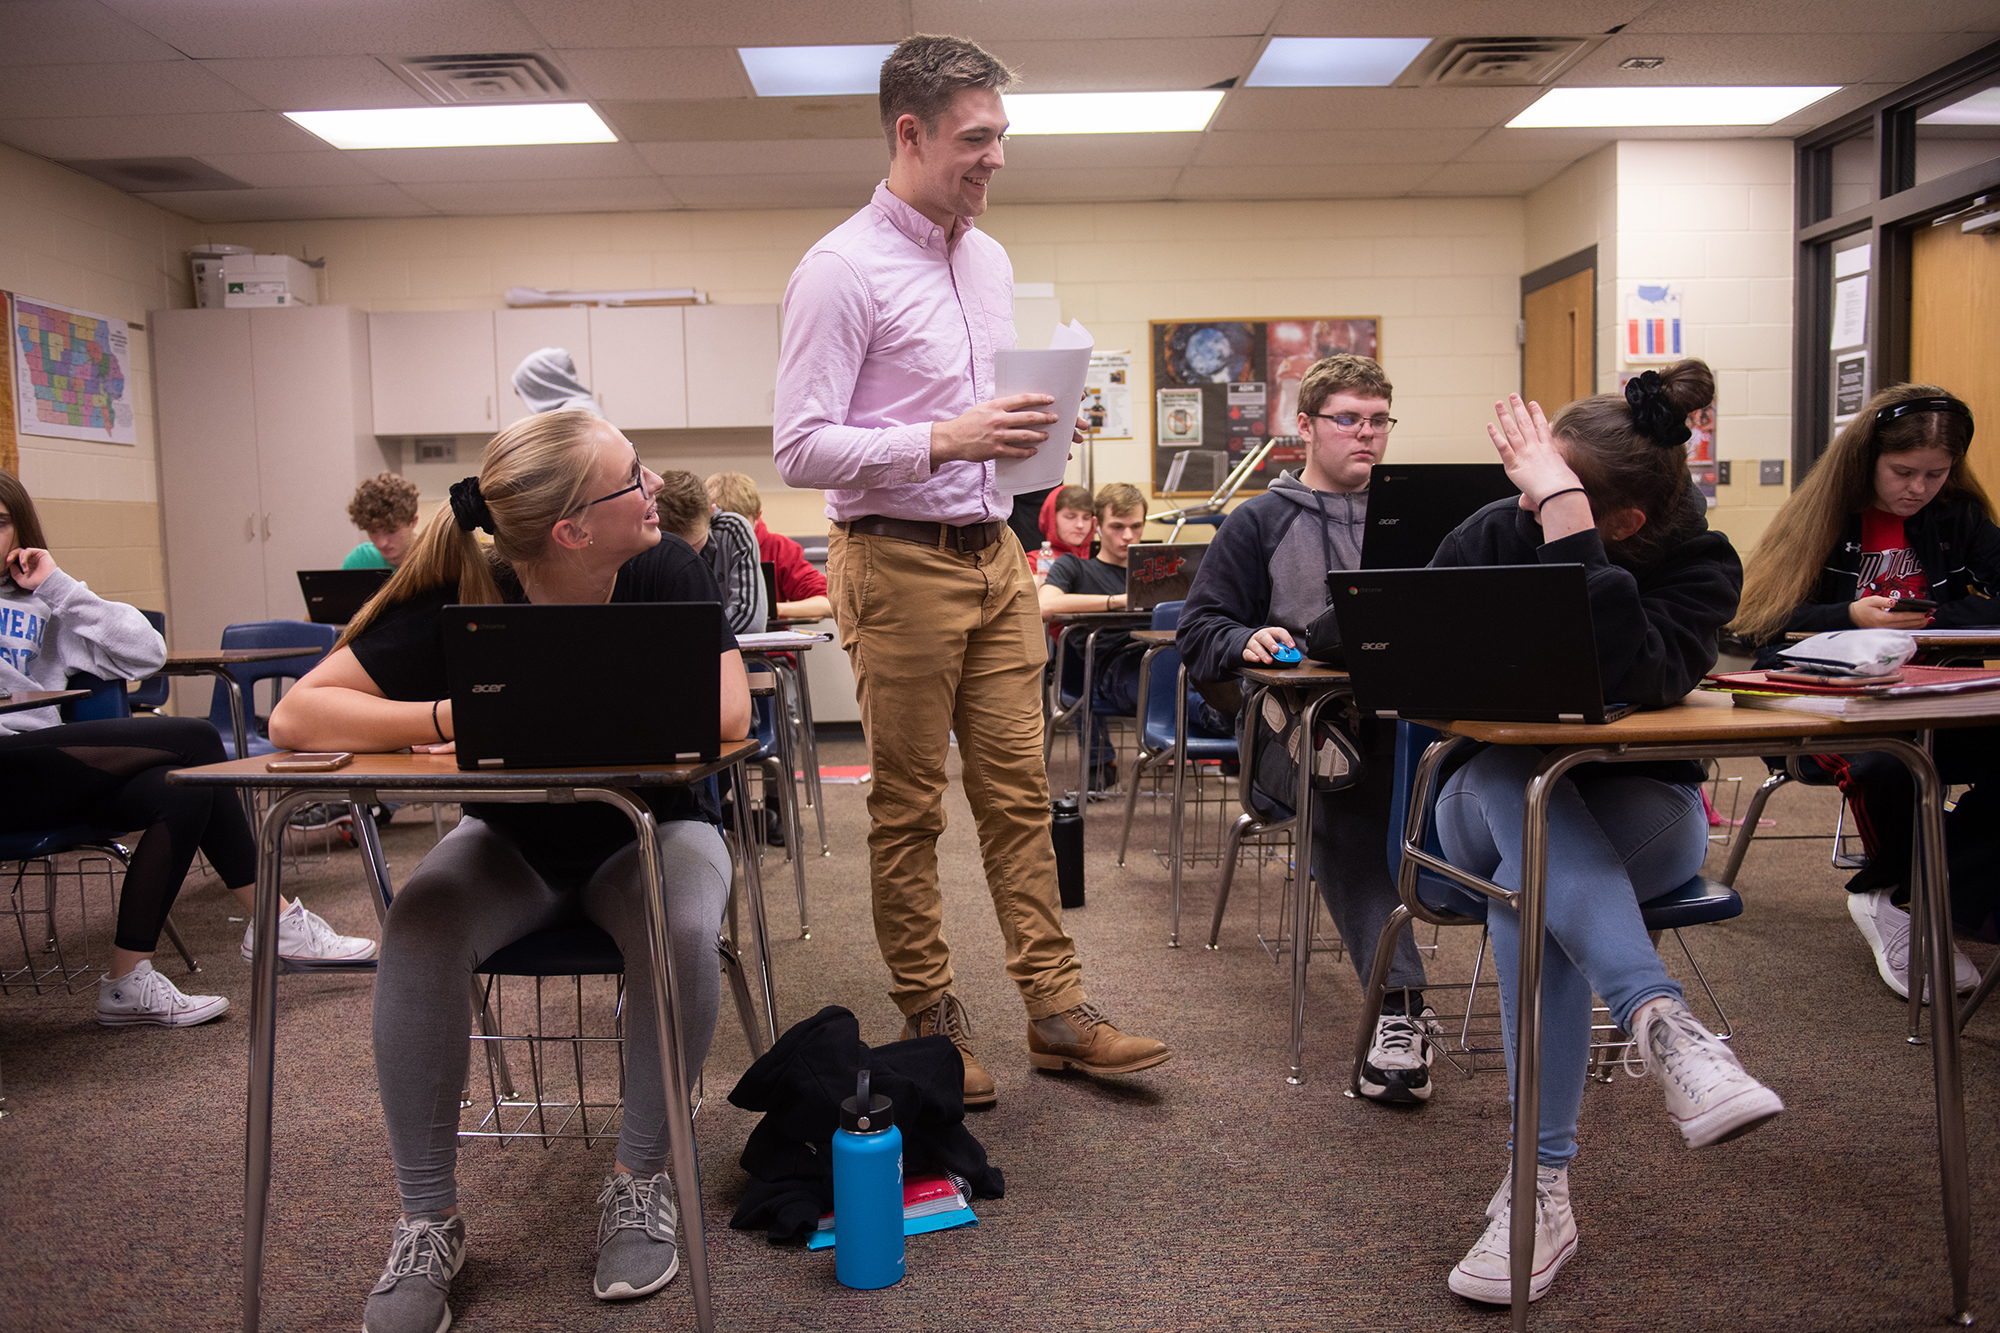 Kaleb Farnham, University of Iowa graduate, student teaching during the fall 2019 semester